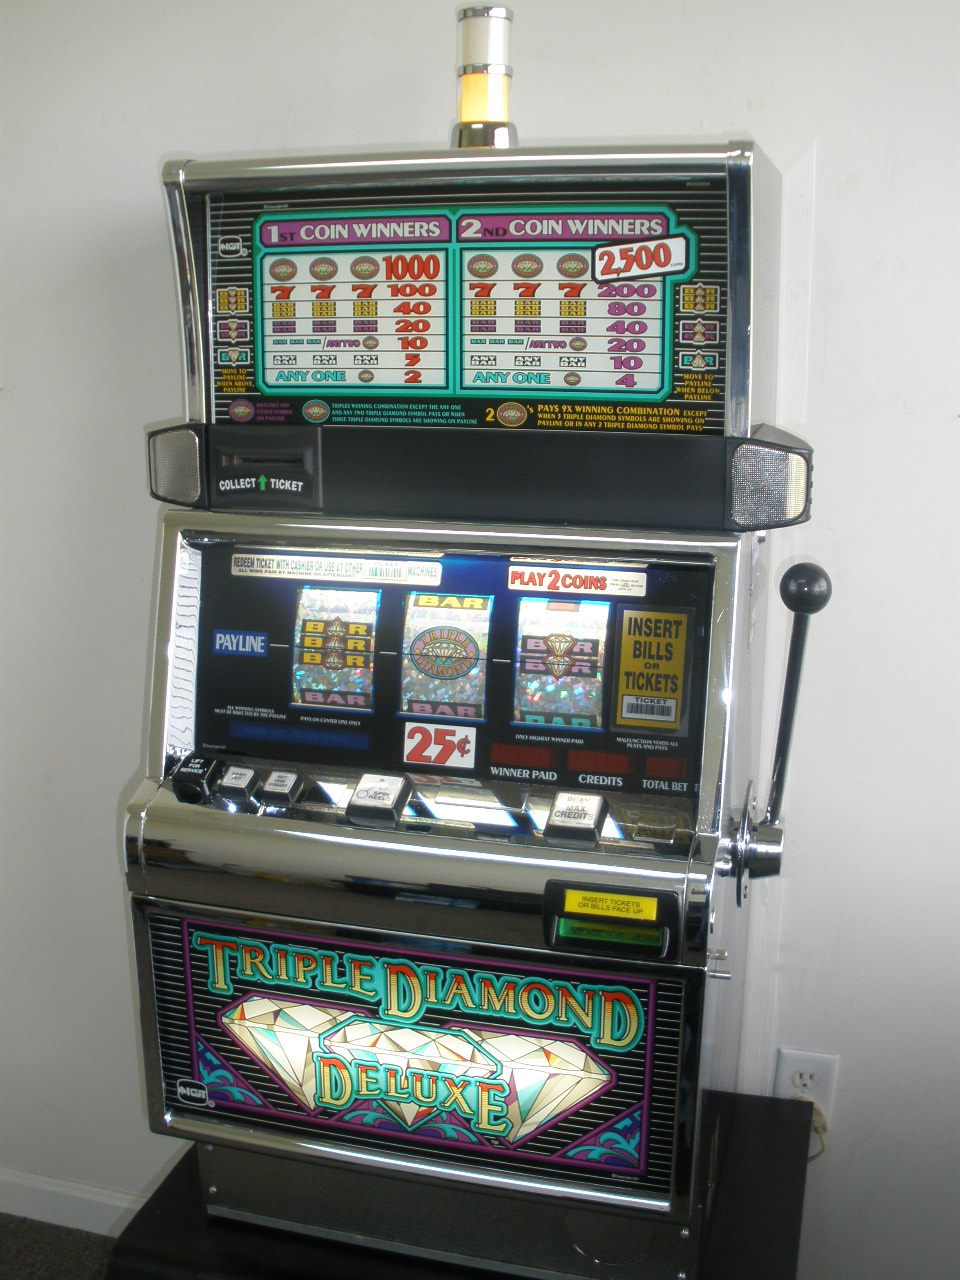 IGT TRIPLE DIAMOND DELUXE S2000 SLOT MACHINE - FLAT TOP